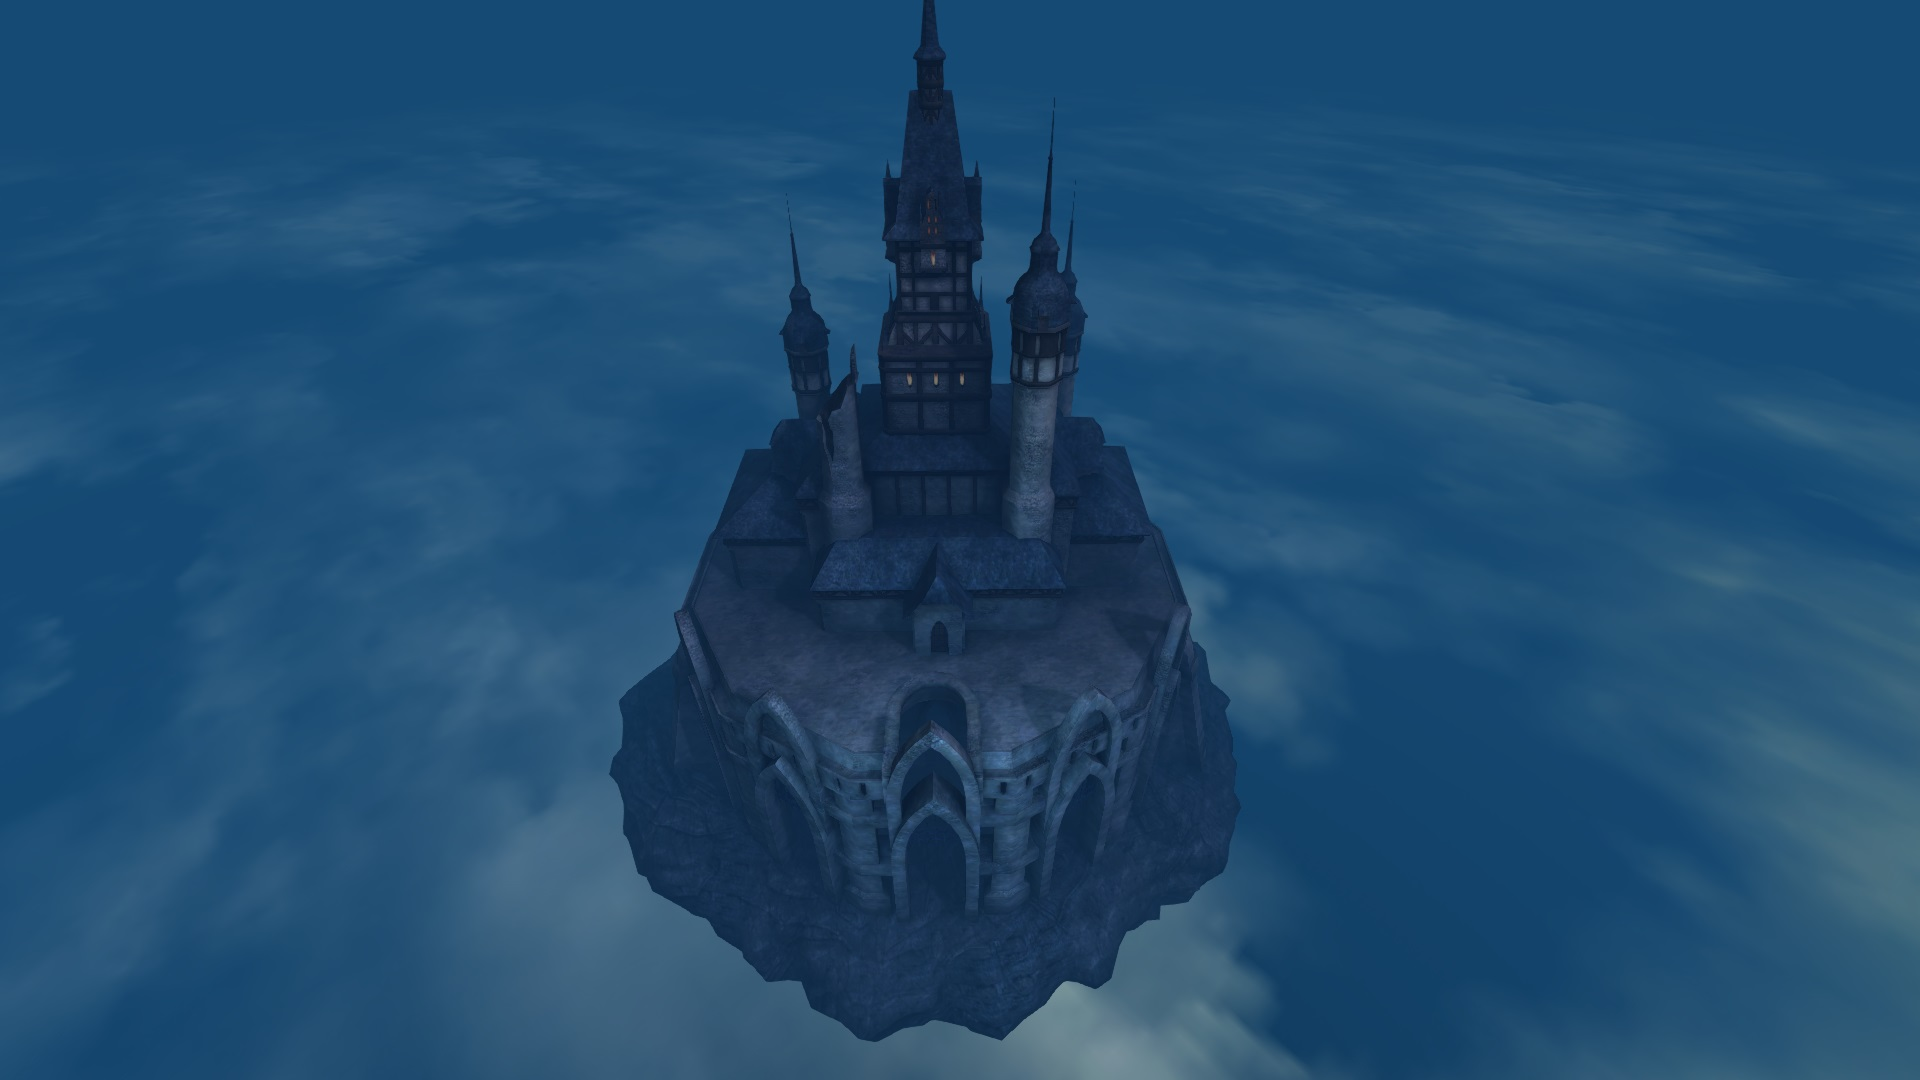 Terraria castle tower castle tower any tips terraria - Terraria Castle Tower Castle Tower Any Tips Terraria 44